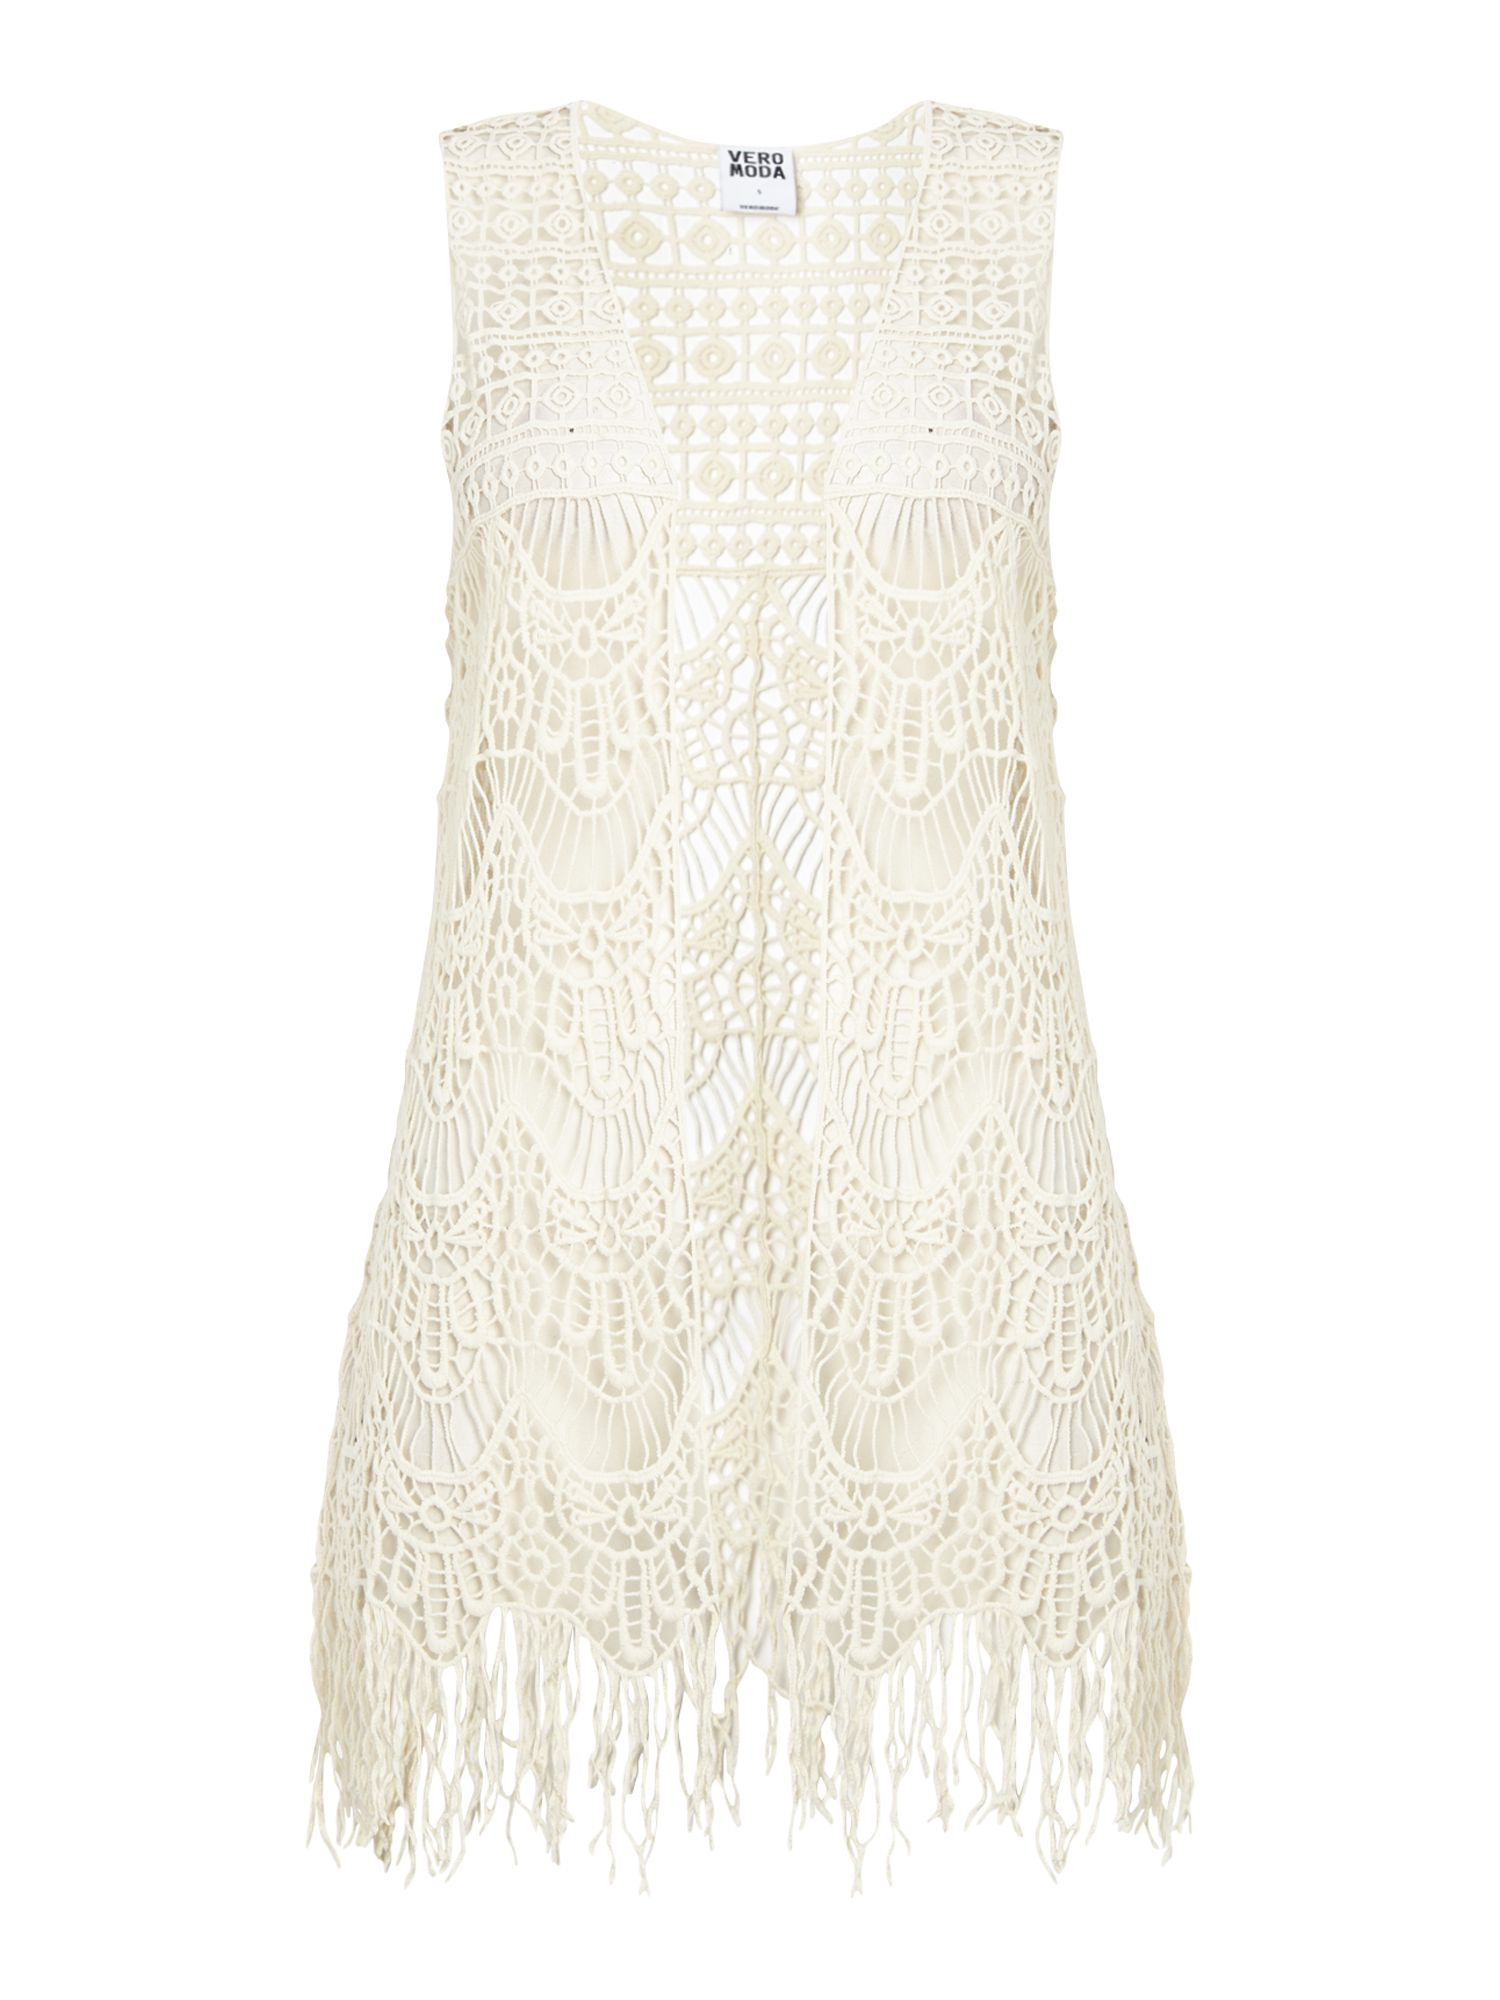 Sleeveless fringe waist